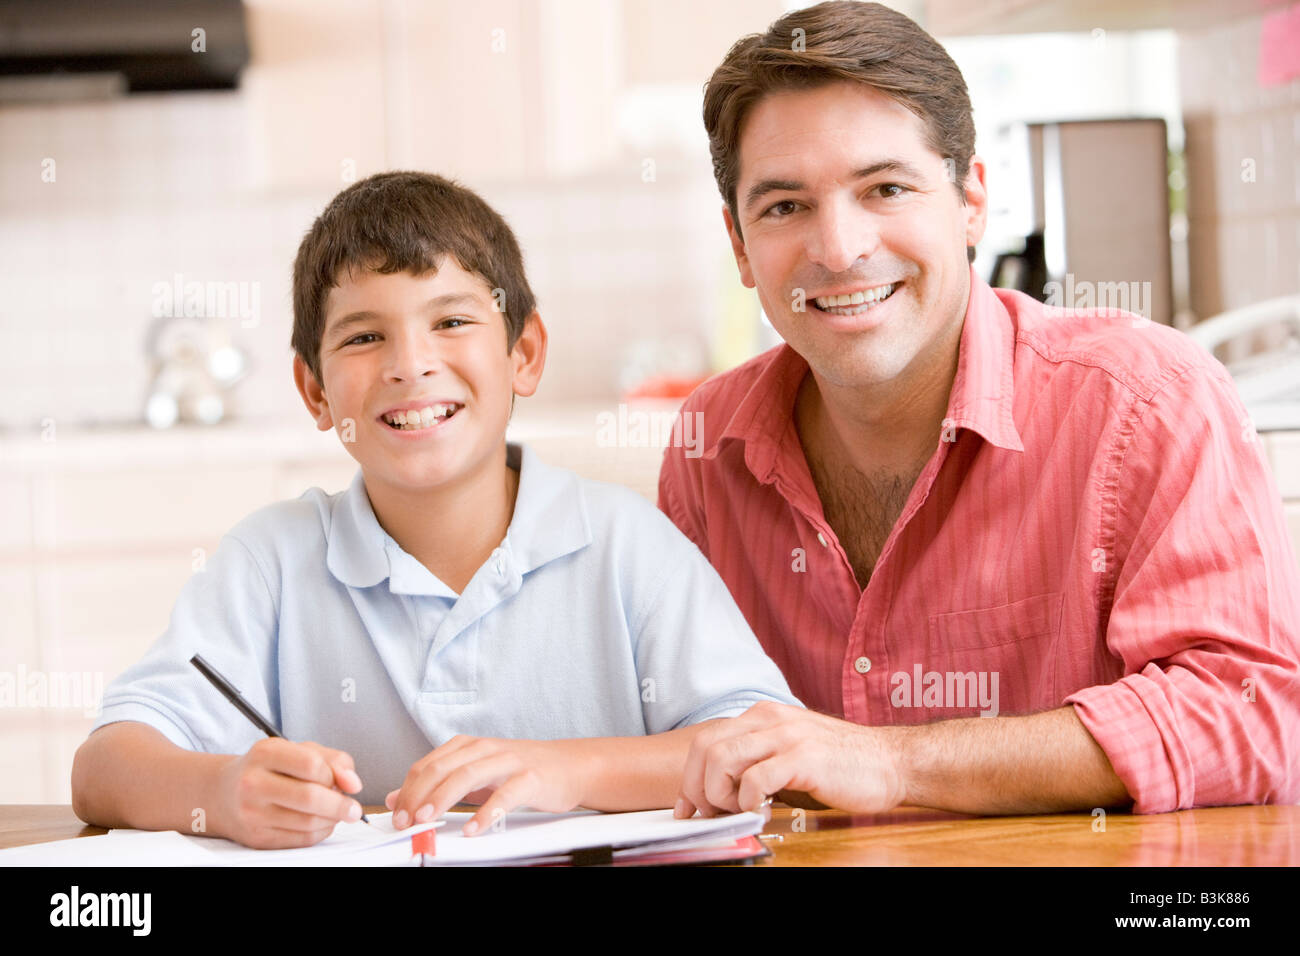 Man helping young boy in kitchen doing homework and smiling - Stock Image